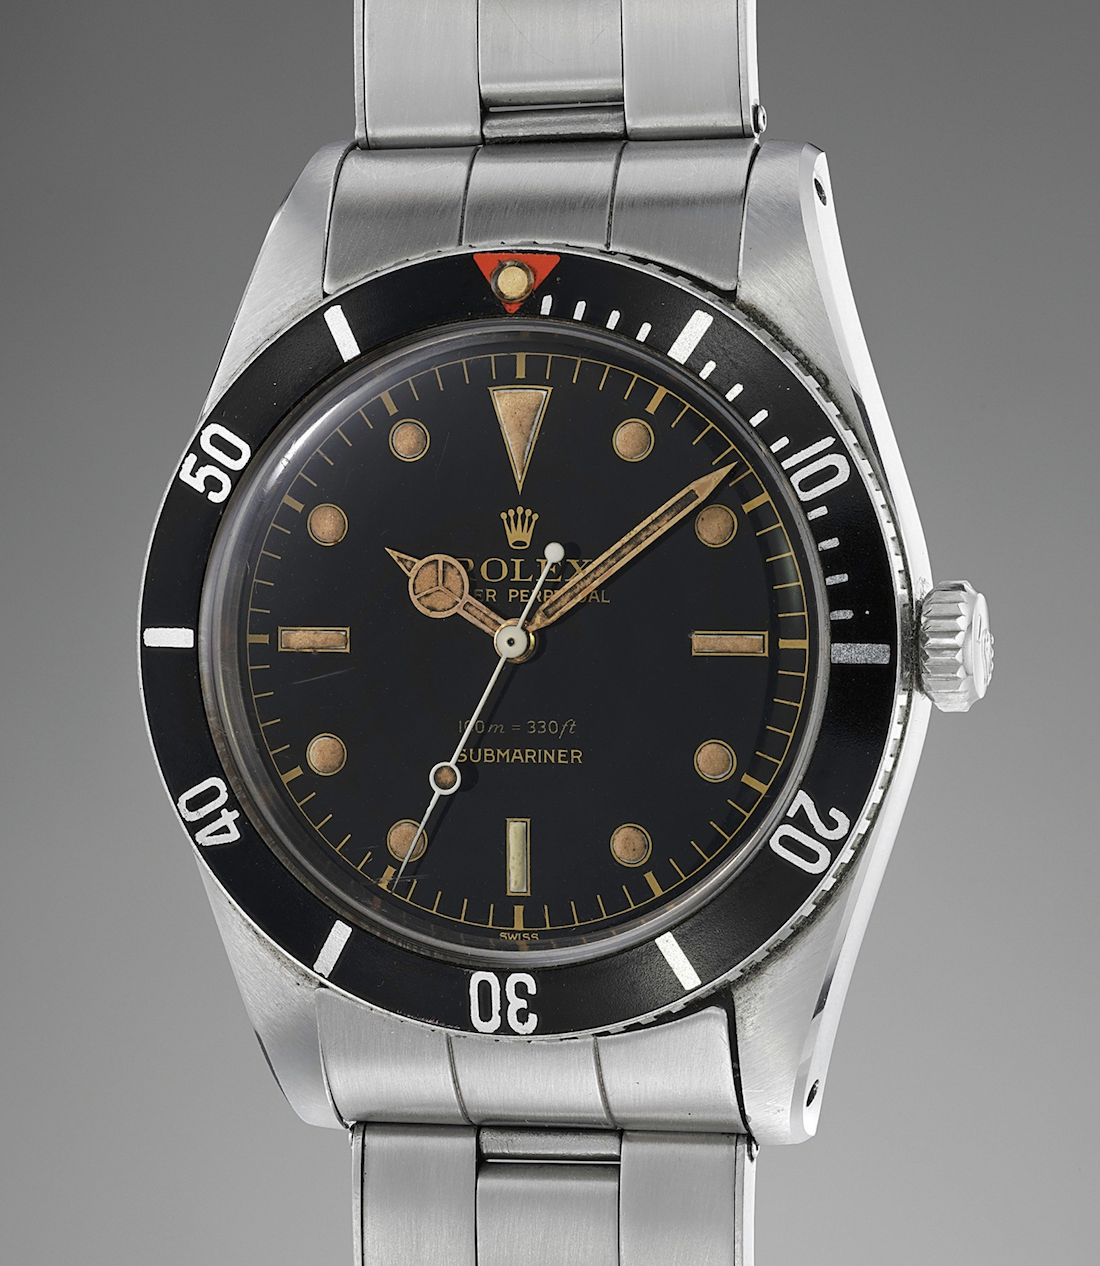 Submariner5508 copy.png